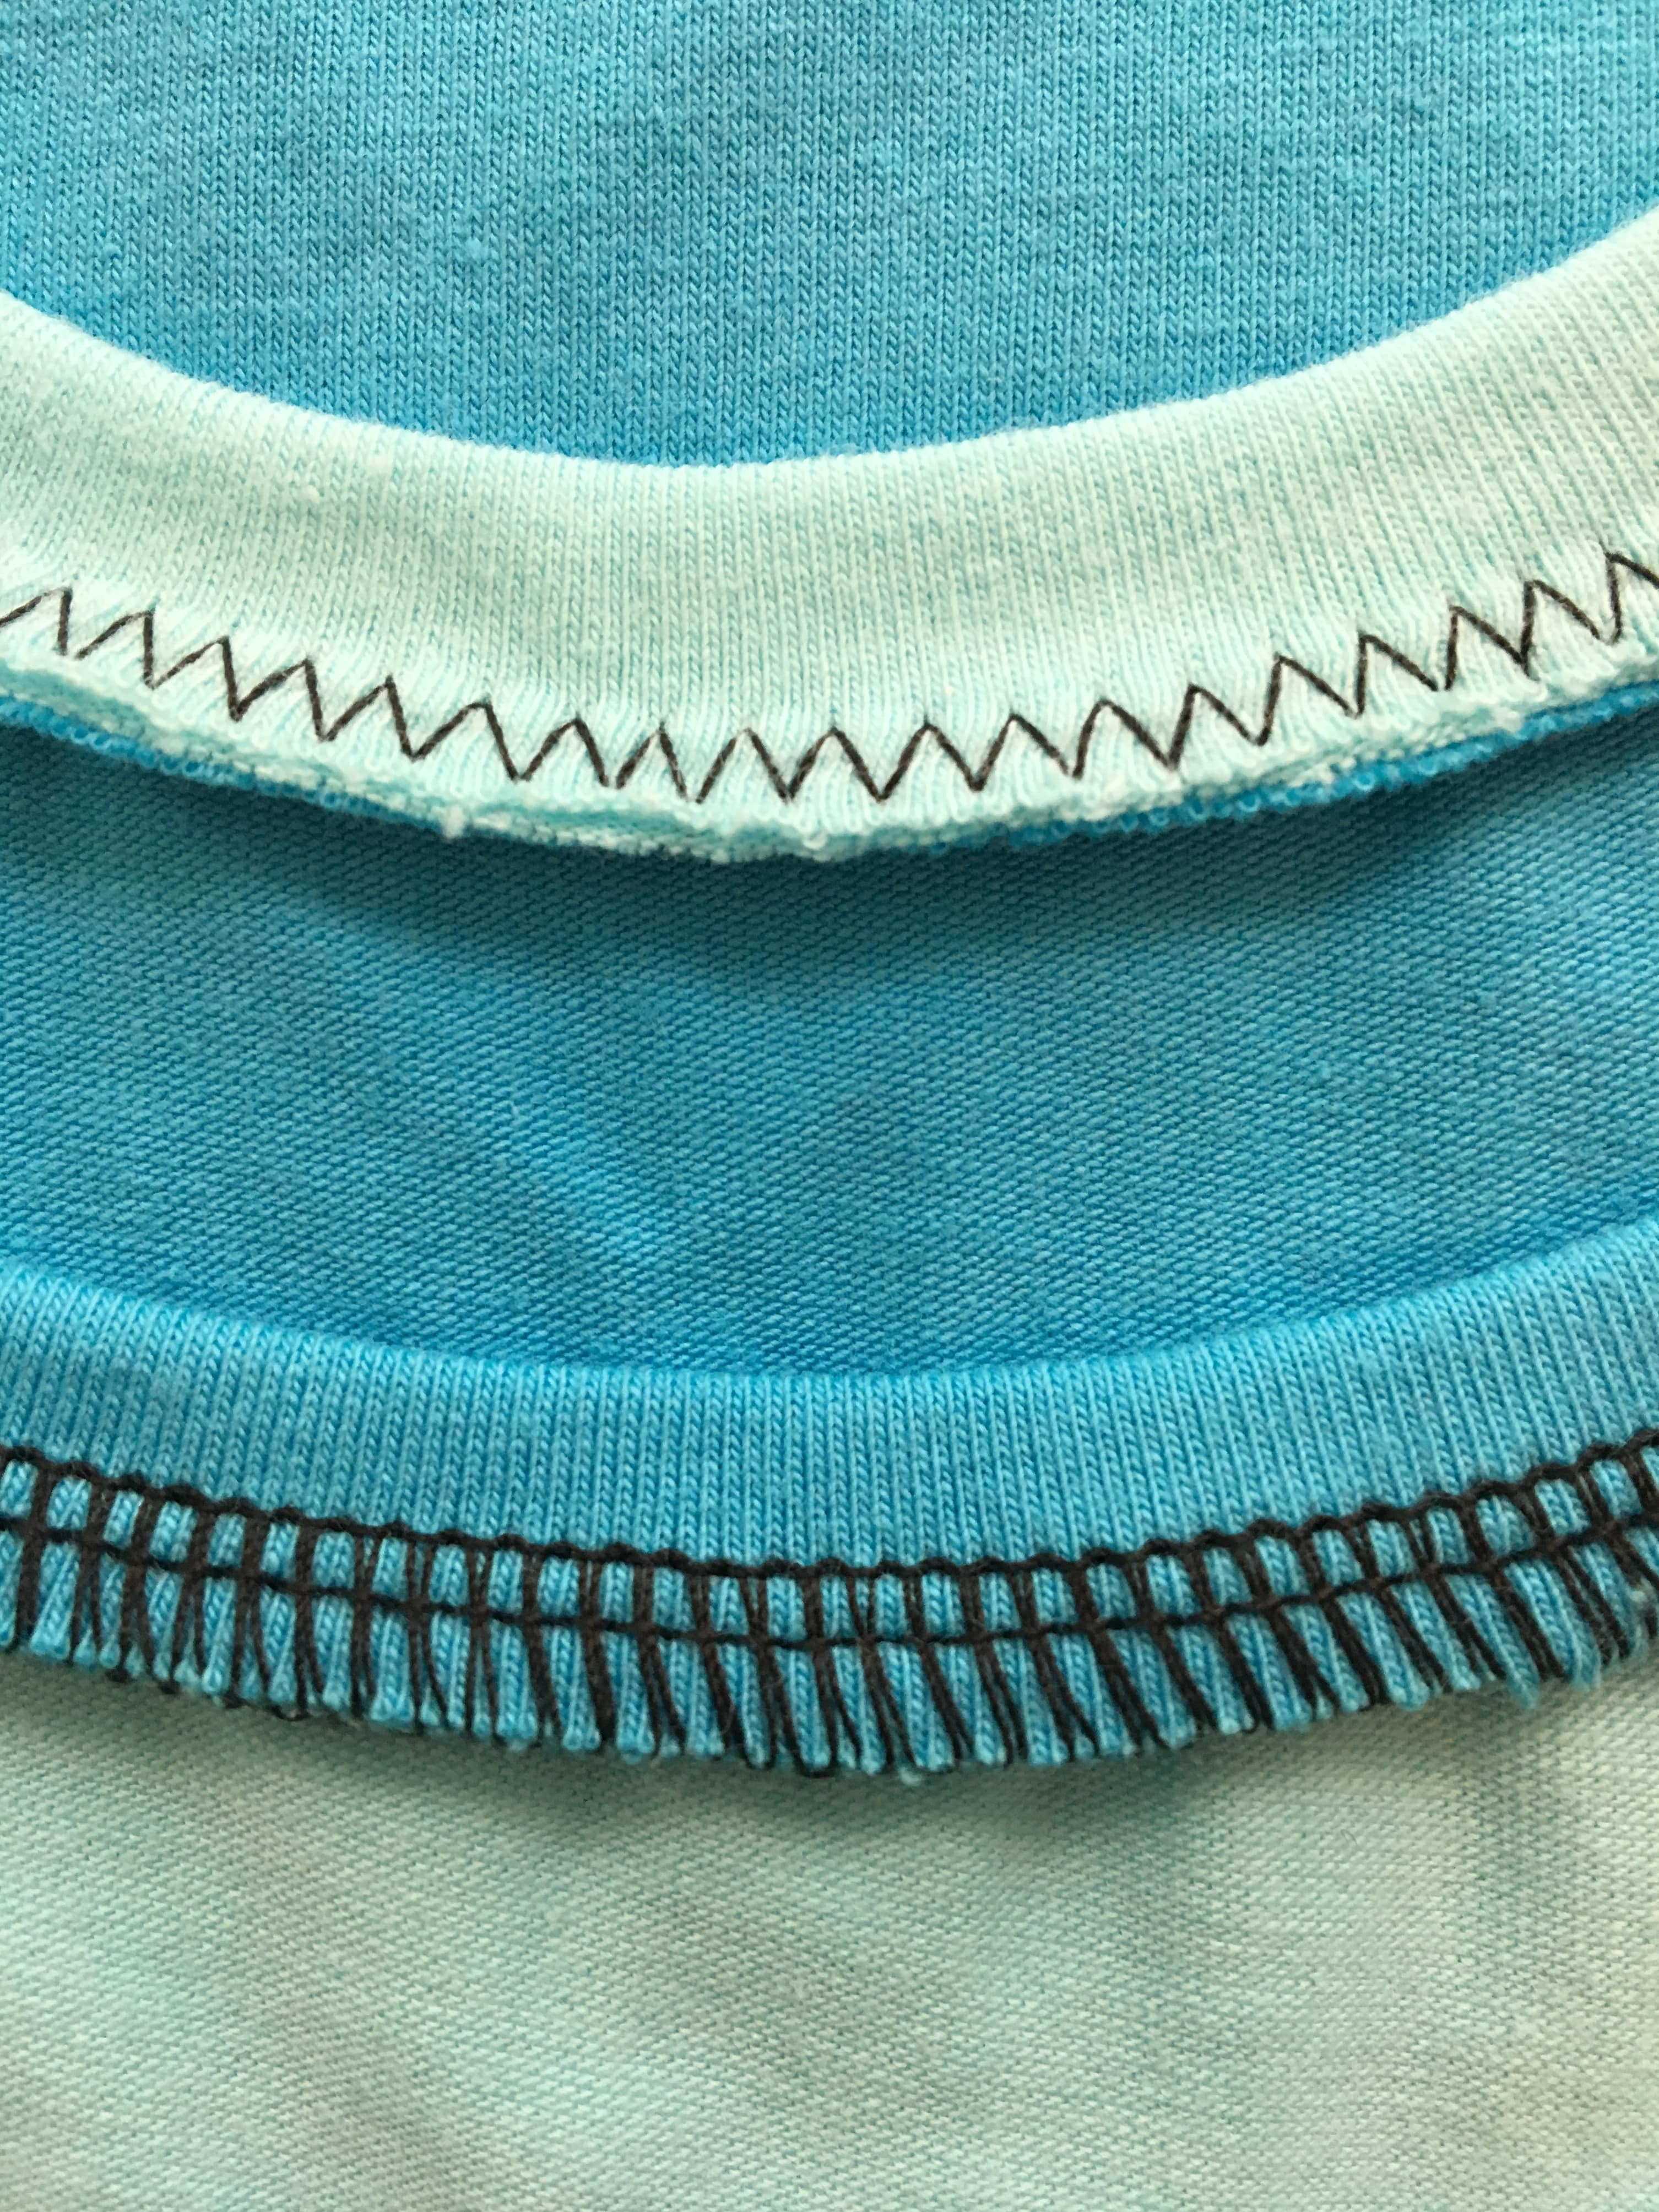 Attaching Knit Bands